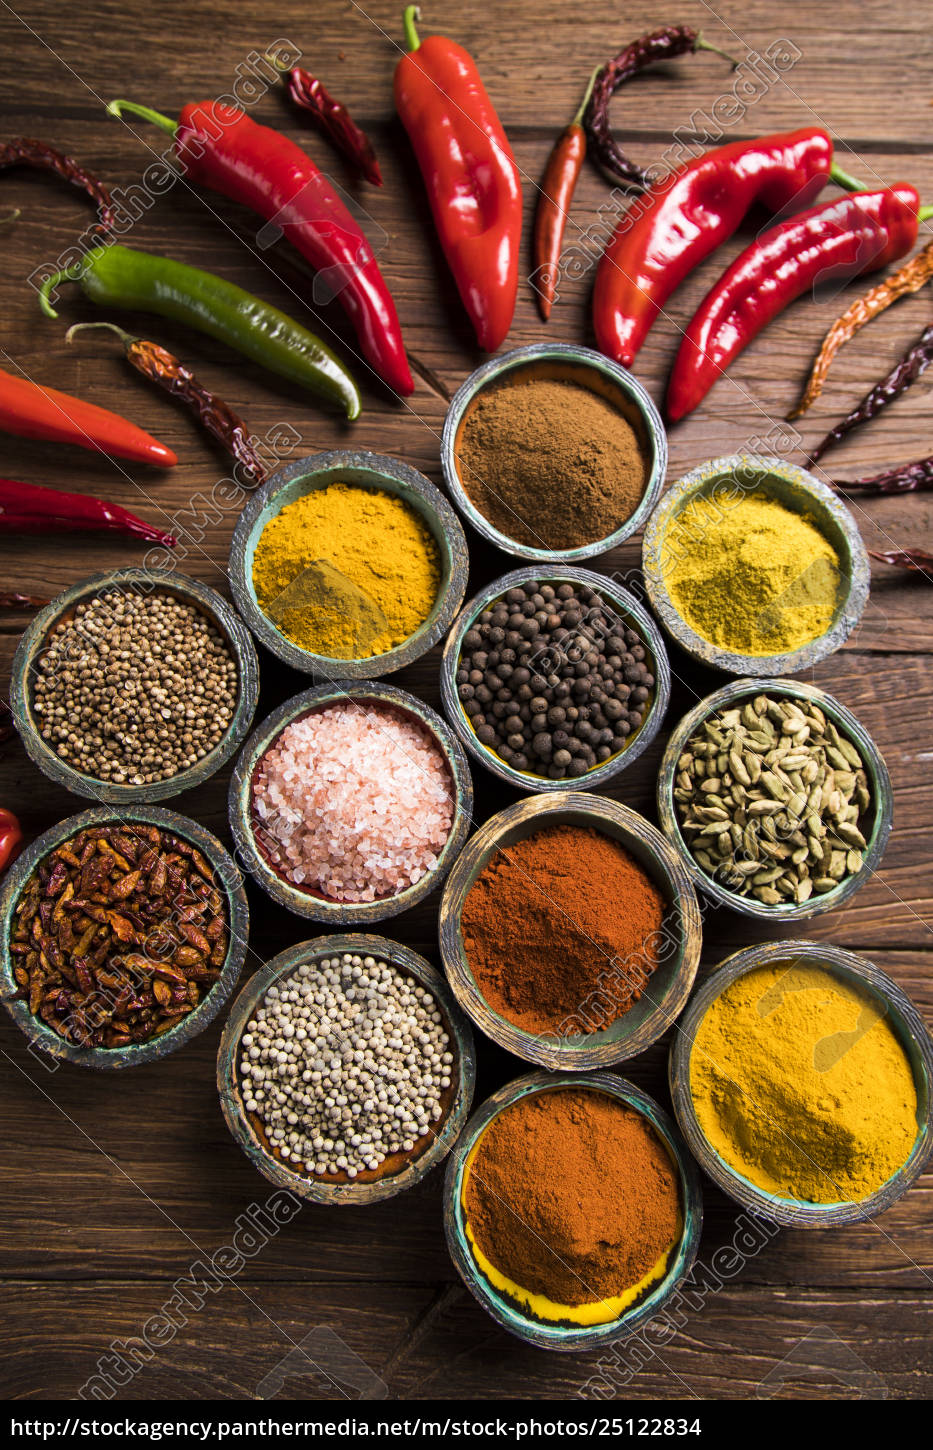 a, selection, of, various, colorful, spices - 25122834